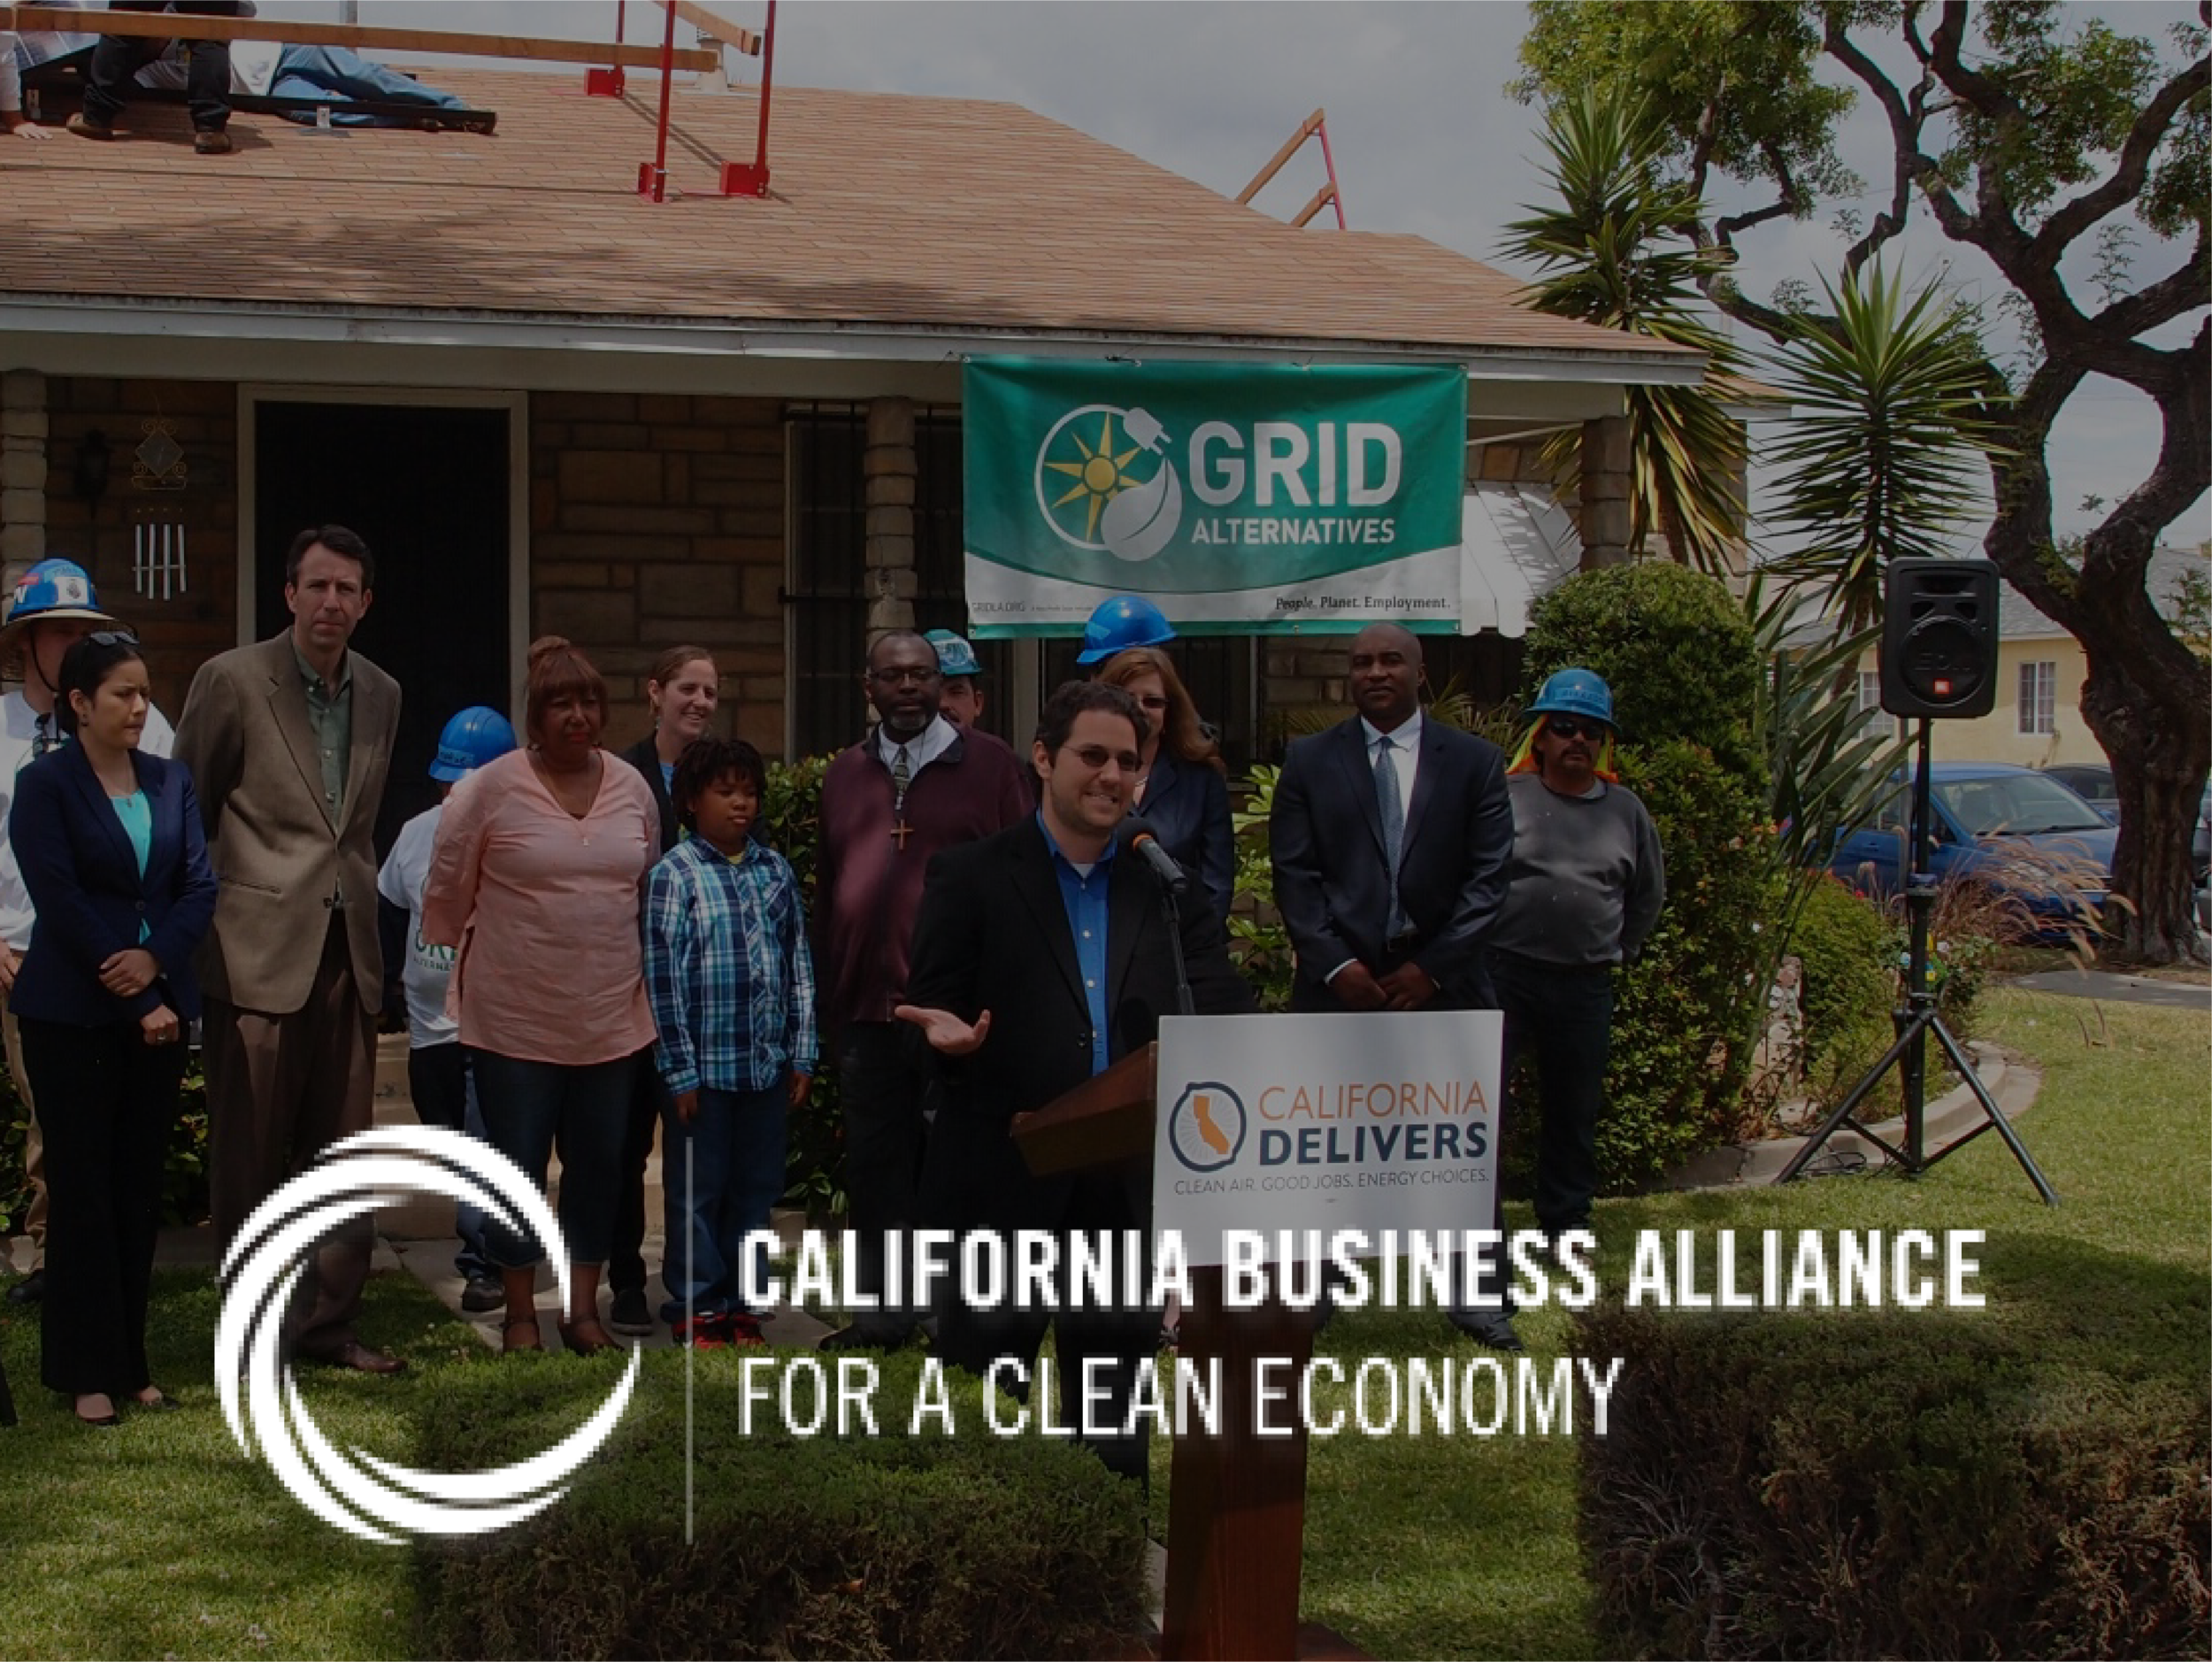 FOUNDATION - Founded the California Business Alliance for a Clean Economy to advance statewide policies that reduce dependence on fossil fuels